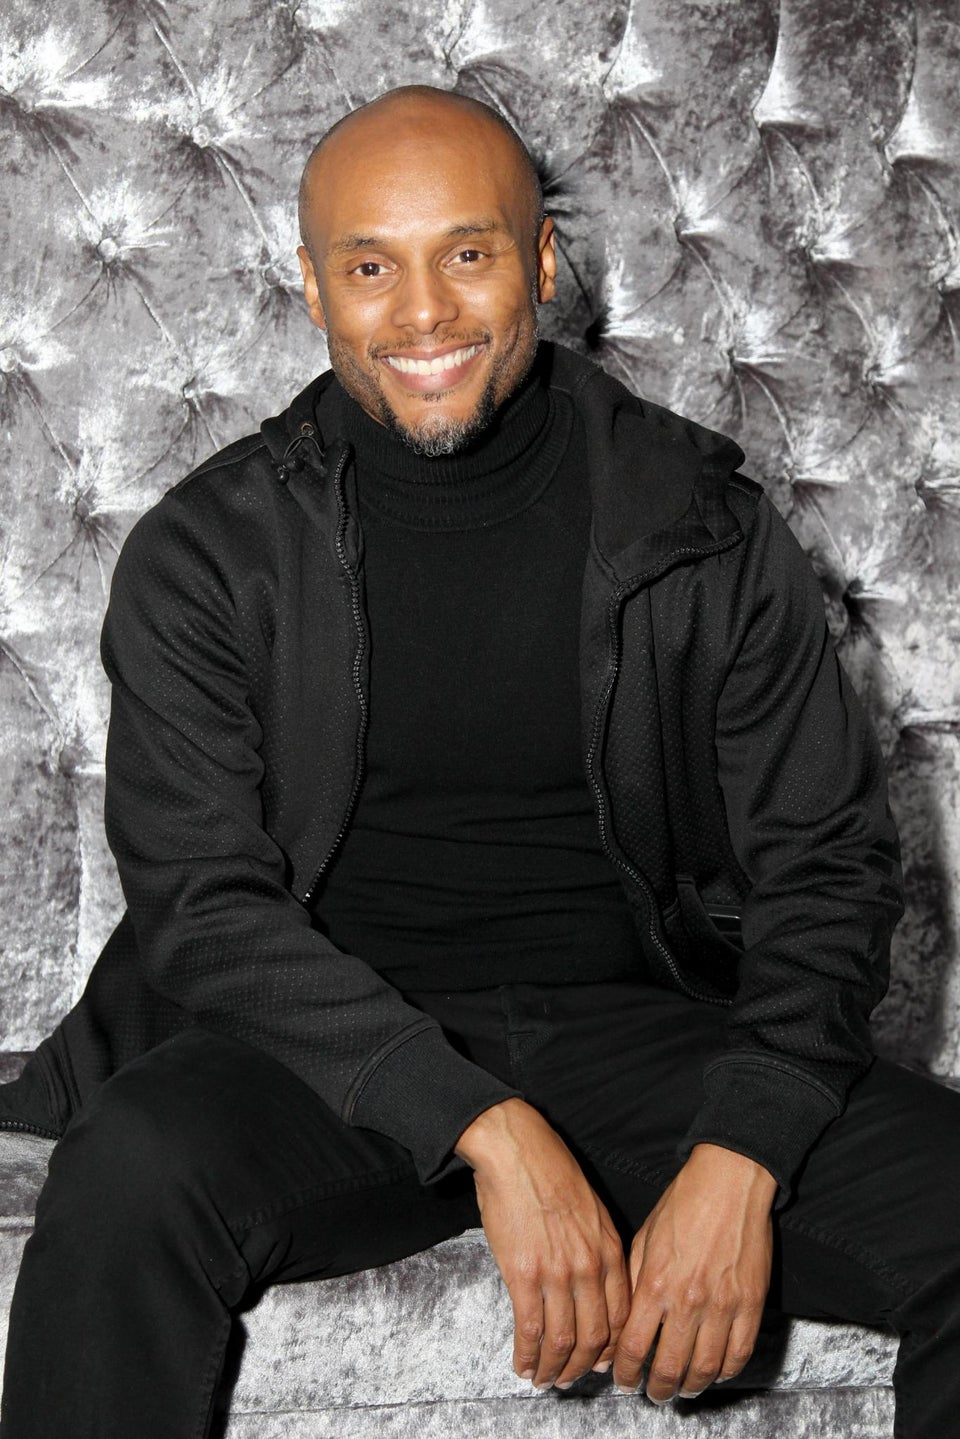 EXCLUSIVE: Kenny Lattimore on His New Album and Falling Back in Love With Music.